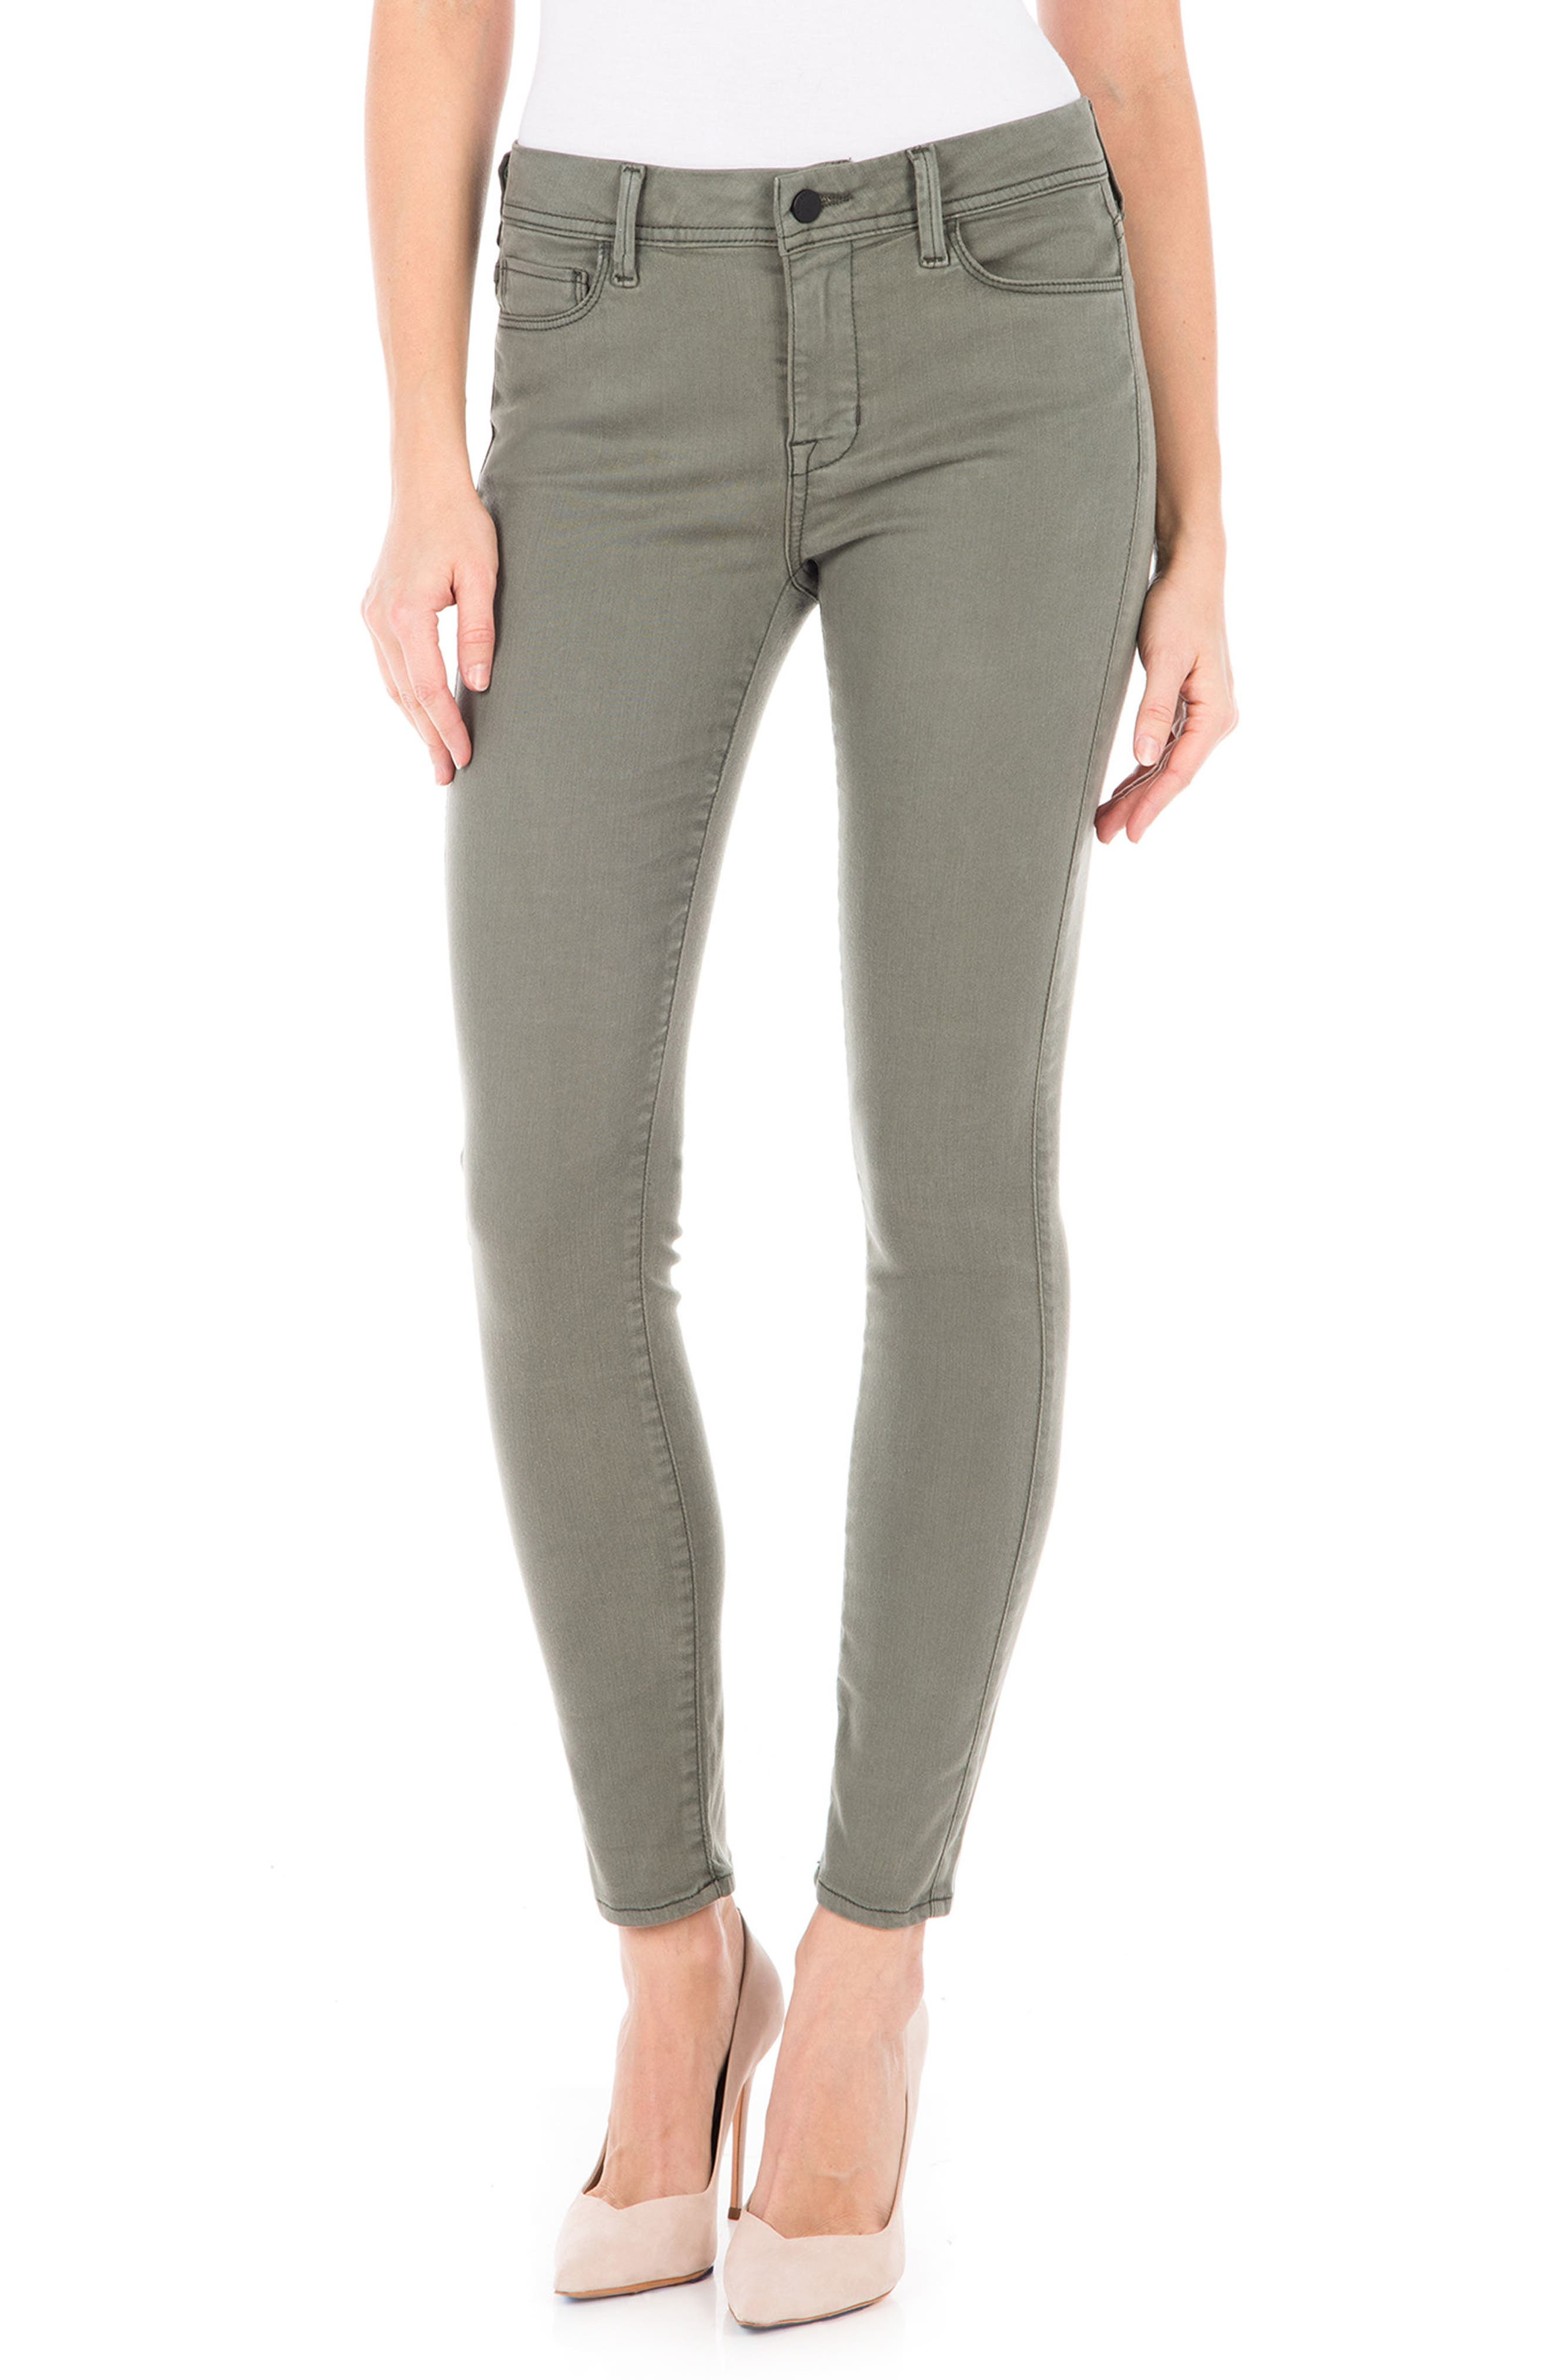 Sola Skinny Jeans,                         Main,                         color,